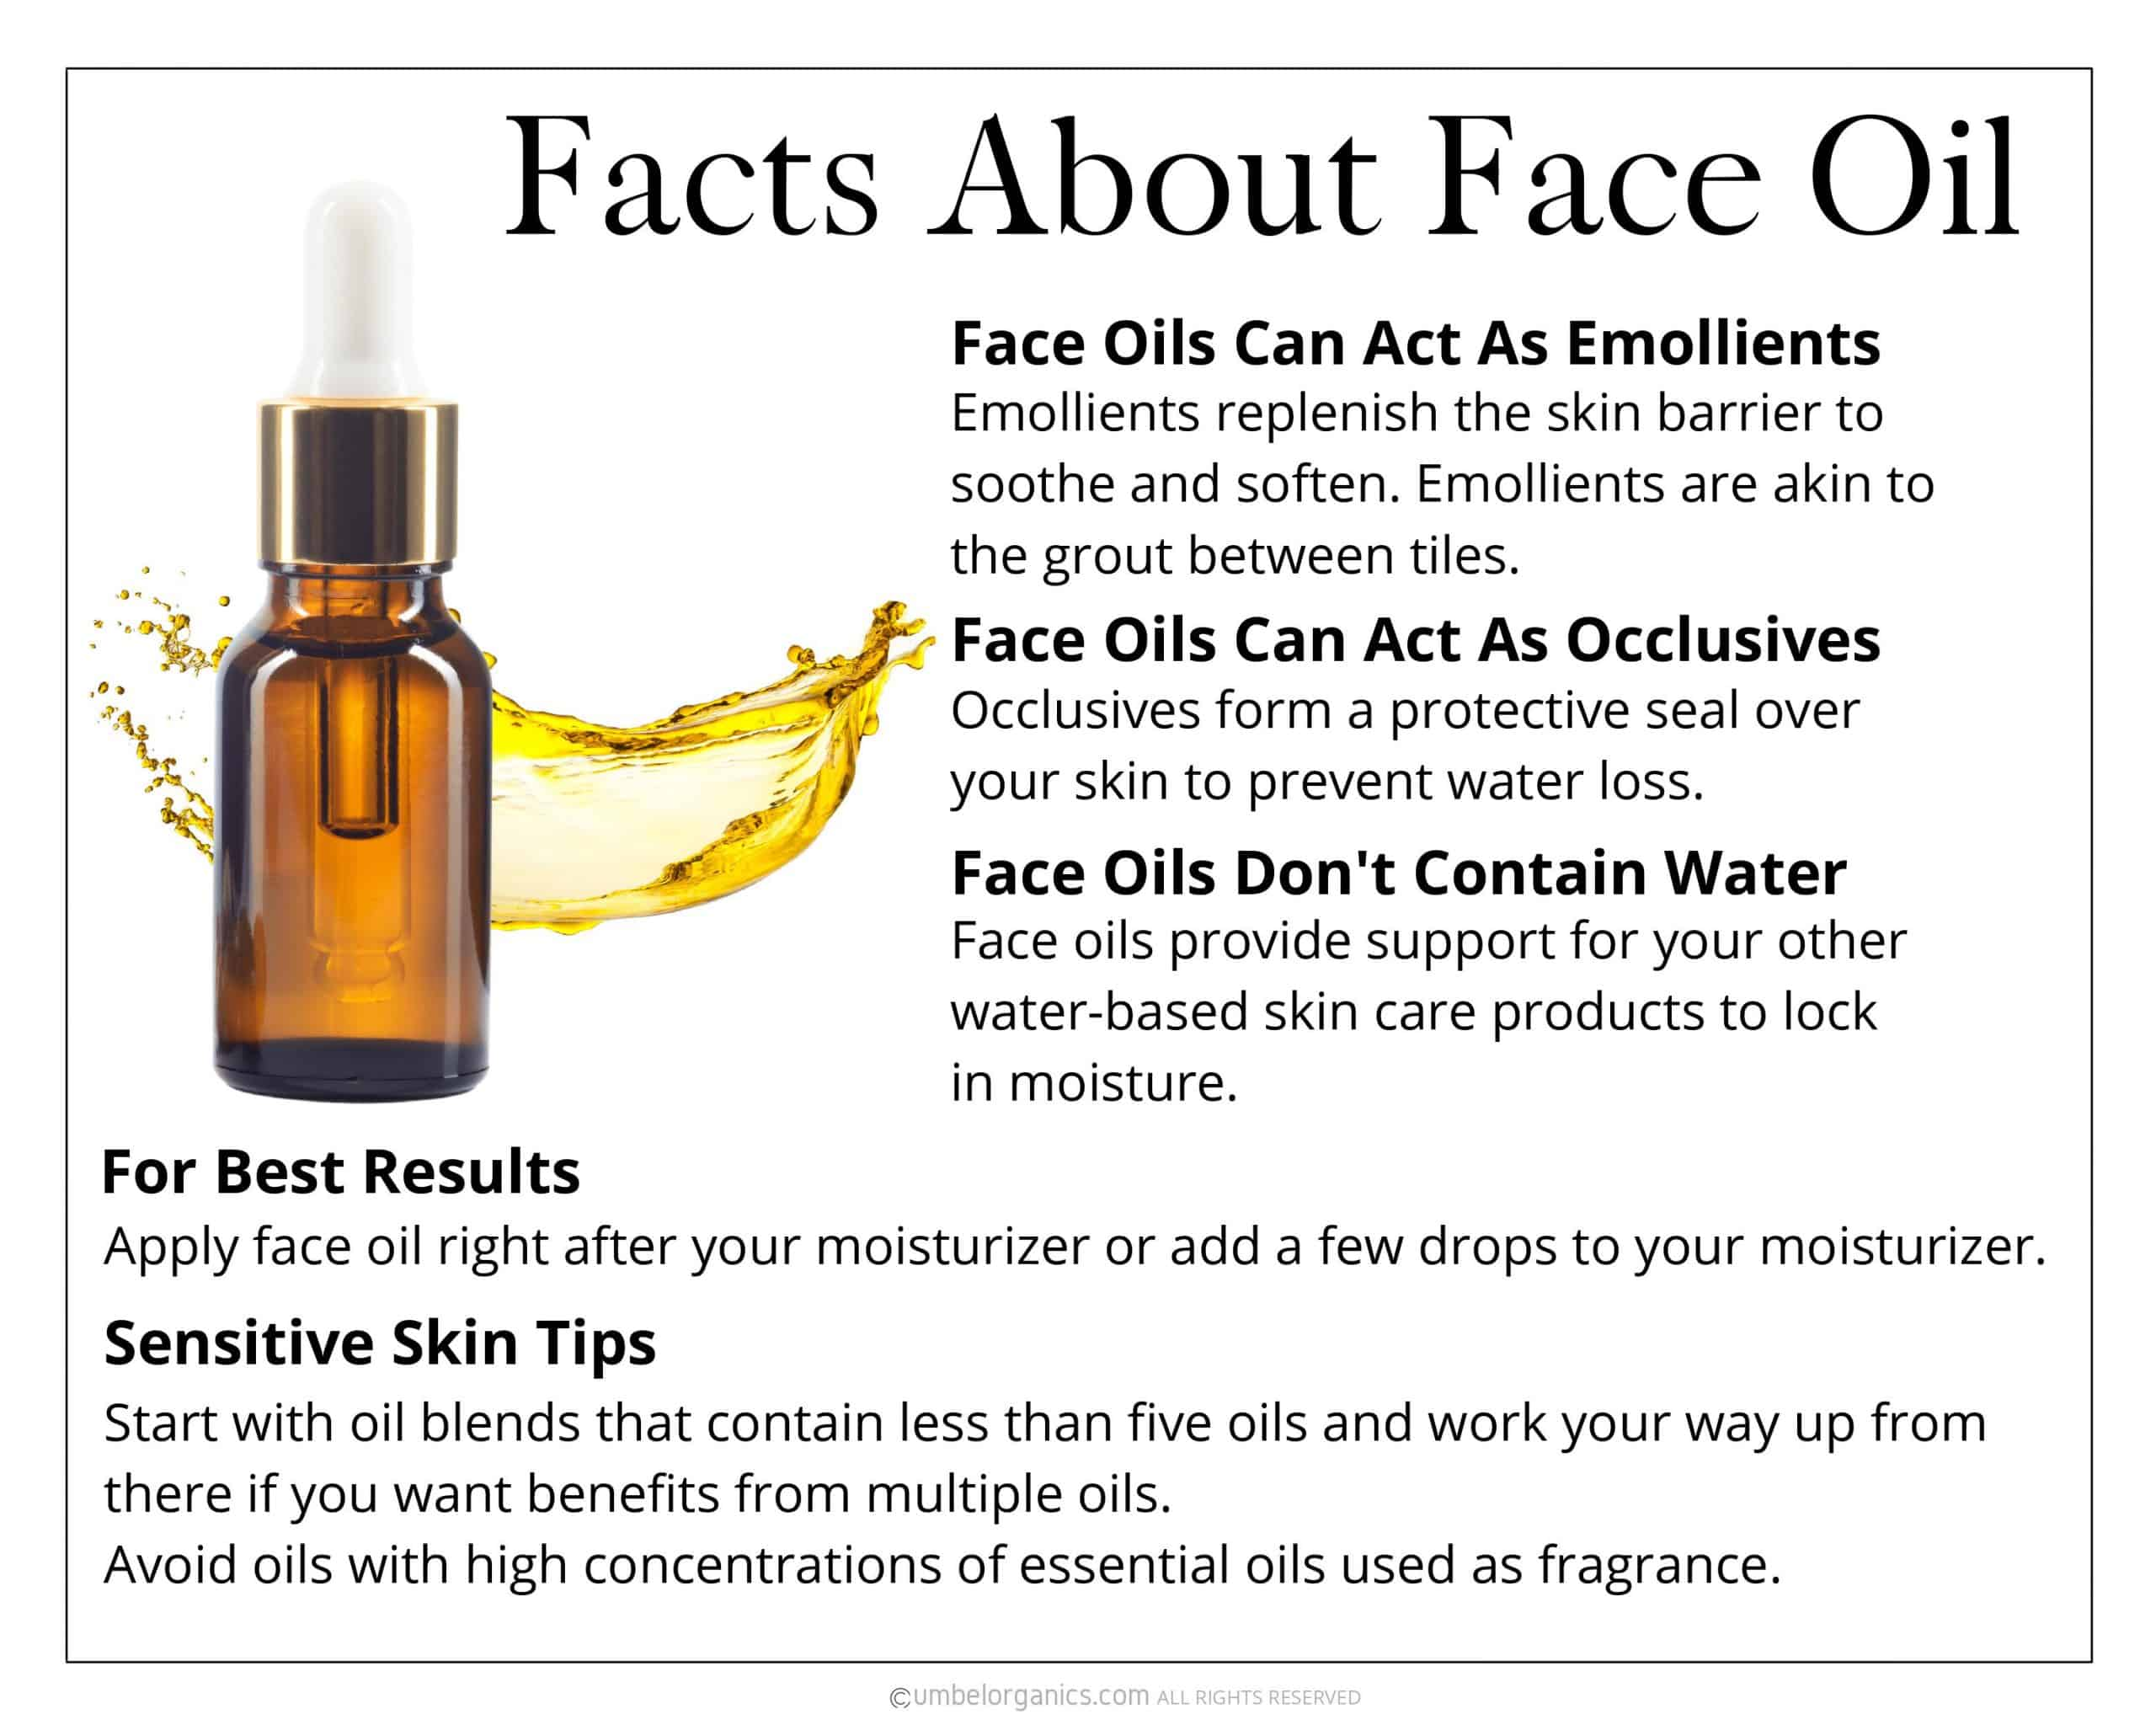 Facts about face oil with glass bottle of face oil